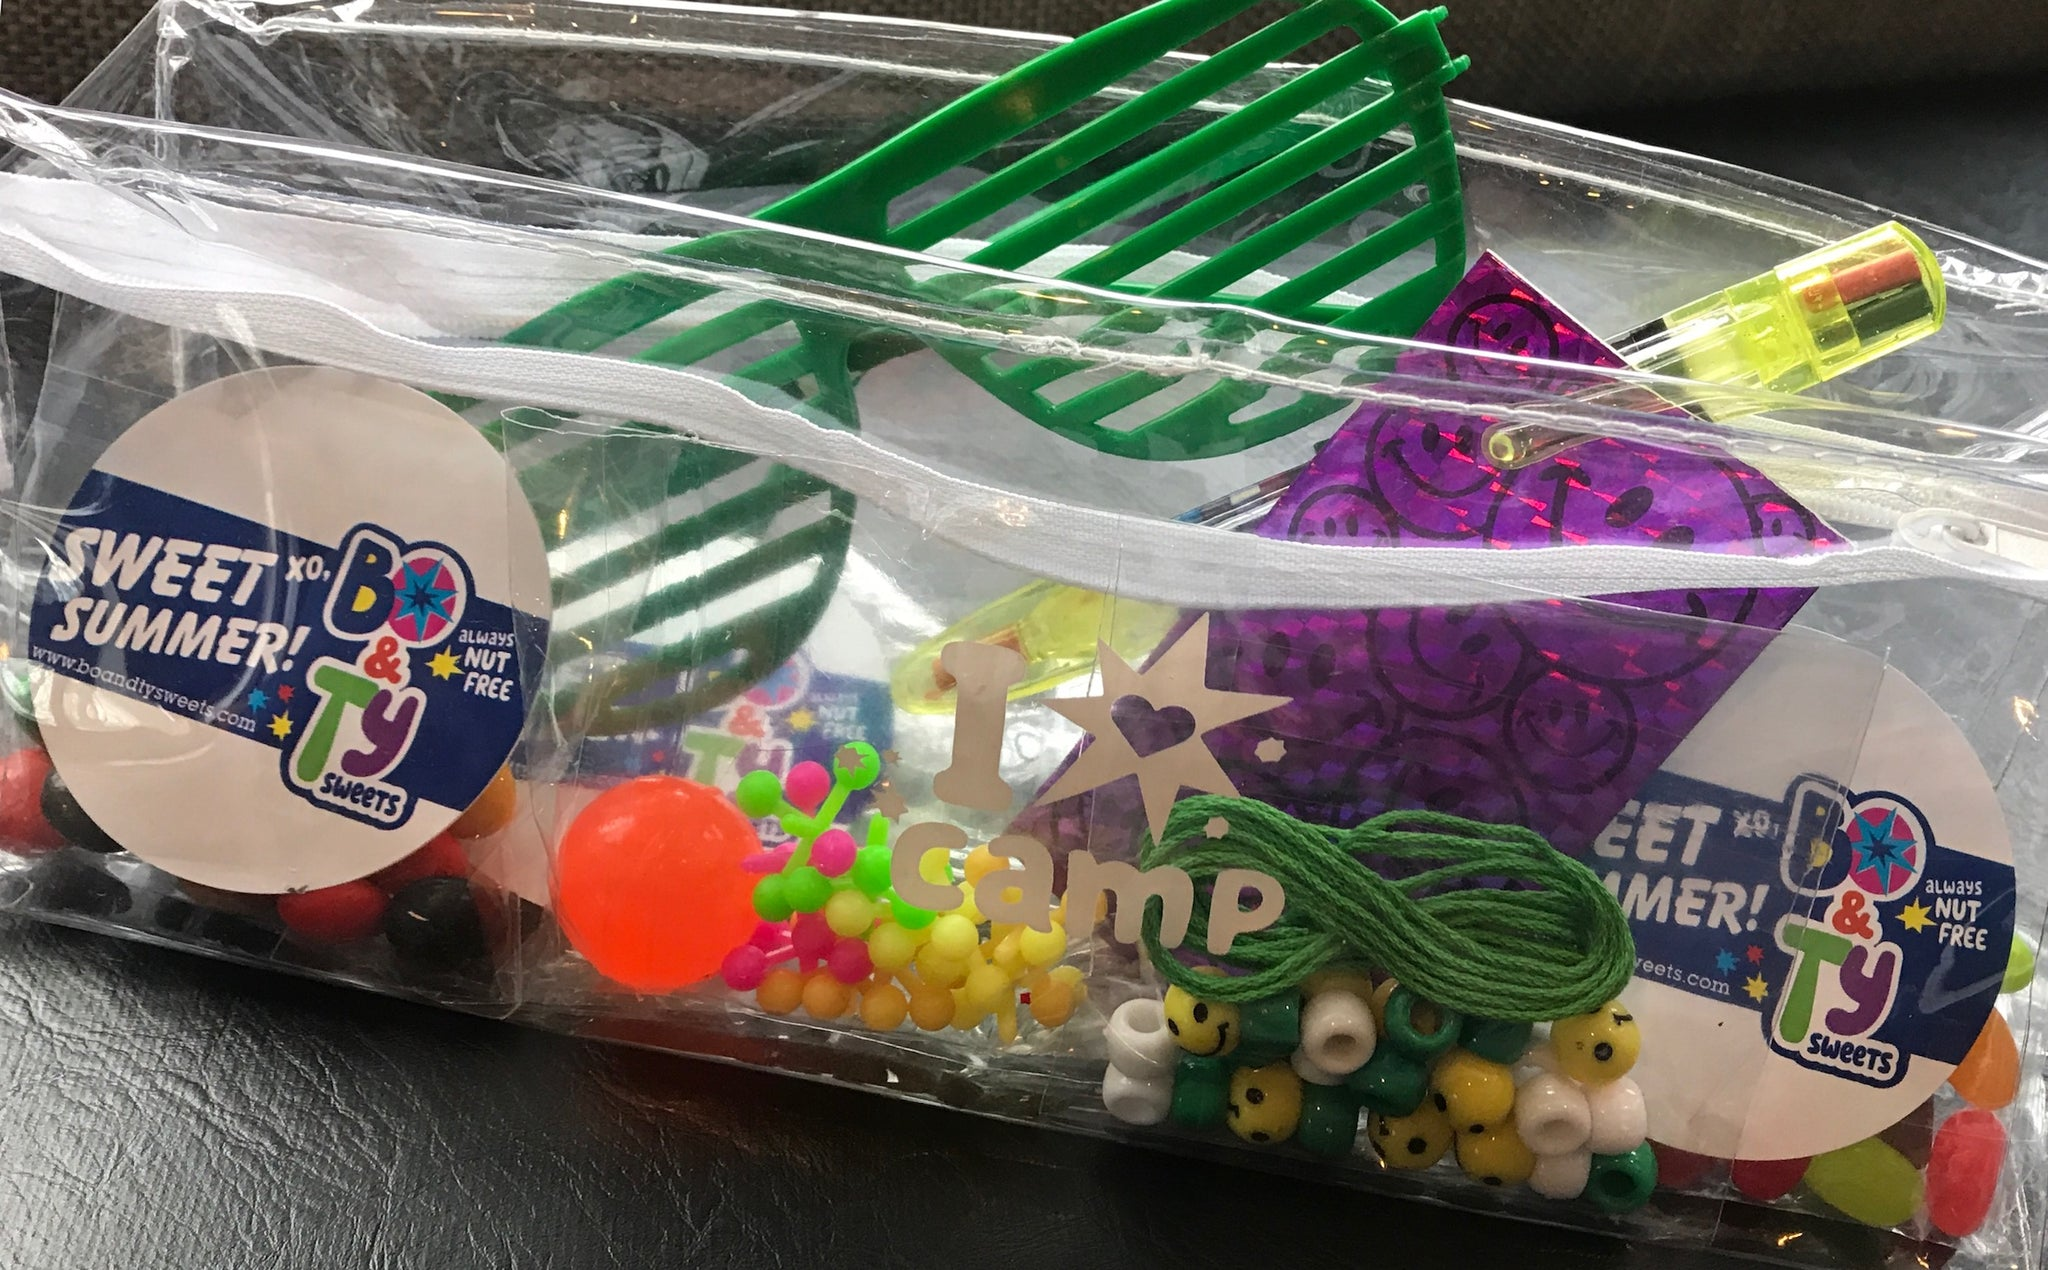 Camp bunk gift filled with nut free and peanut free candy and other bunk junk including set of jacks, sunglasses, camp string and beads, notepad and pencil